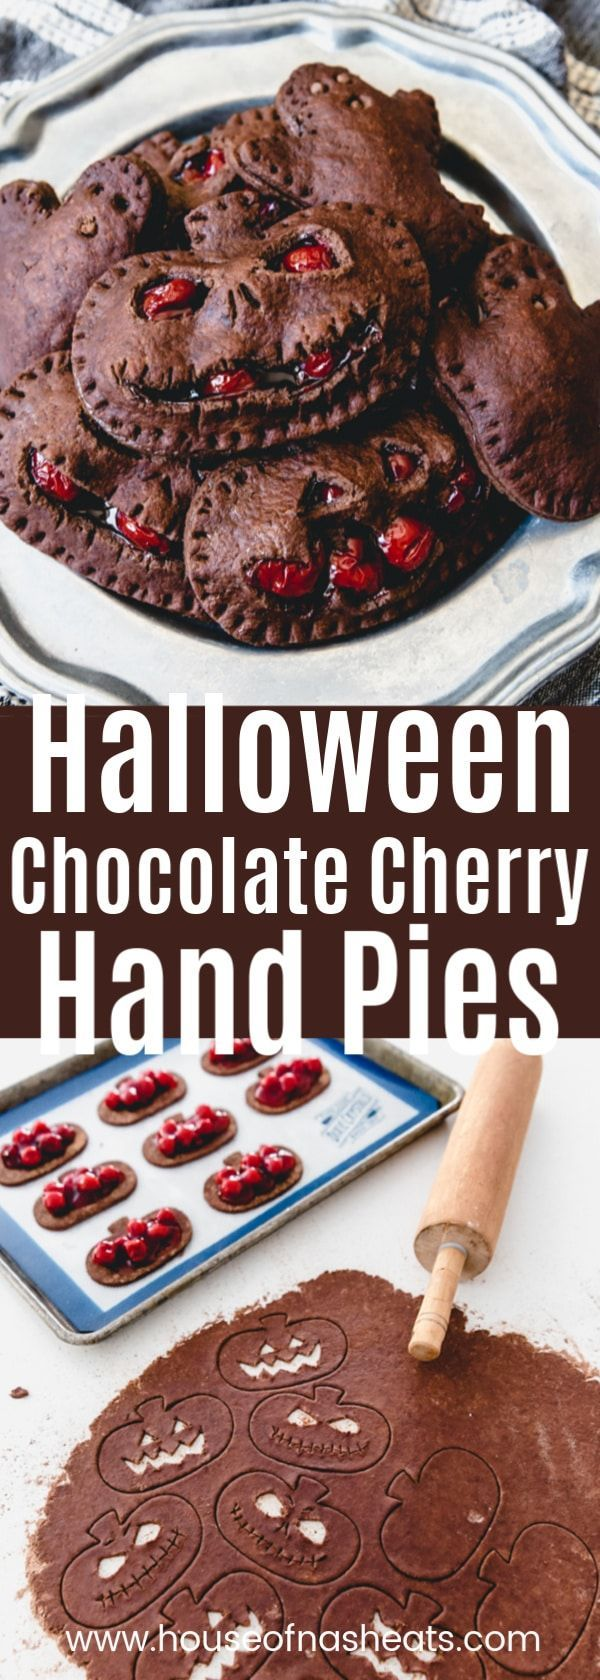 Halloween Chocolate Cherry Hand Pies #halloweendesserts